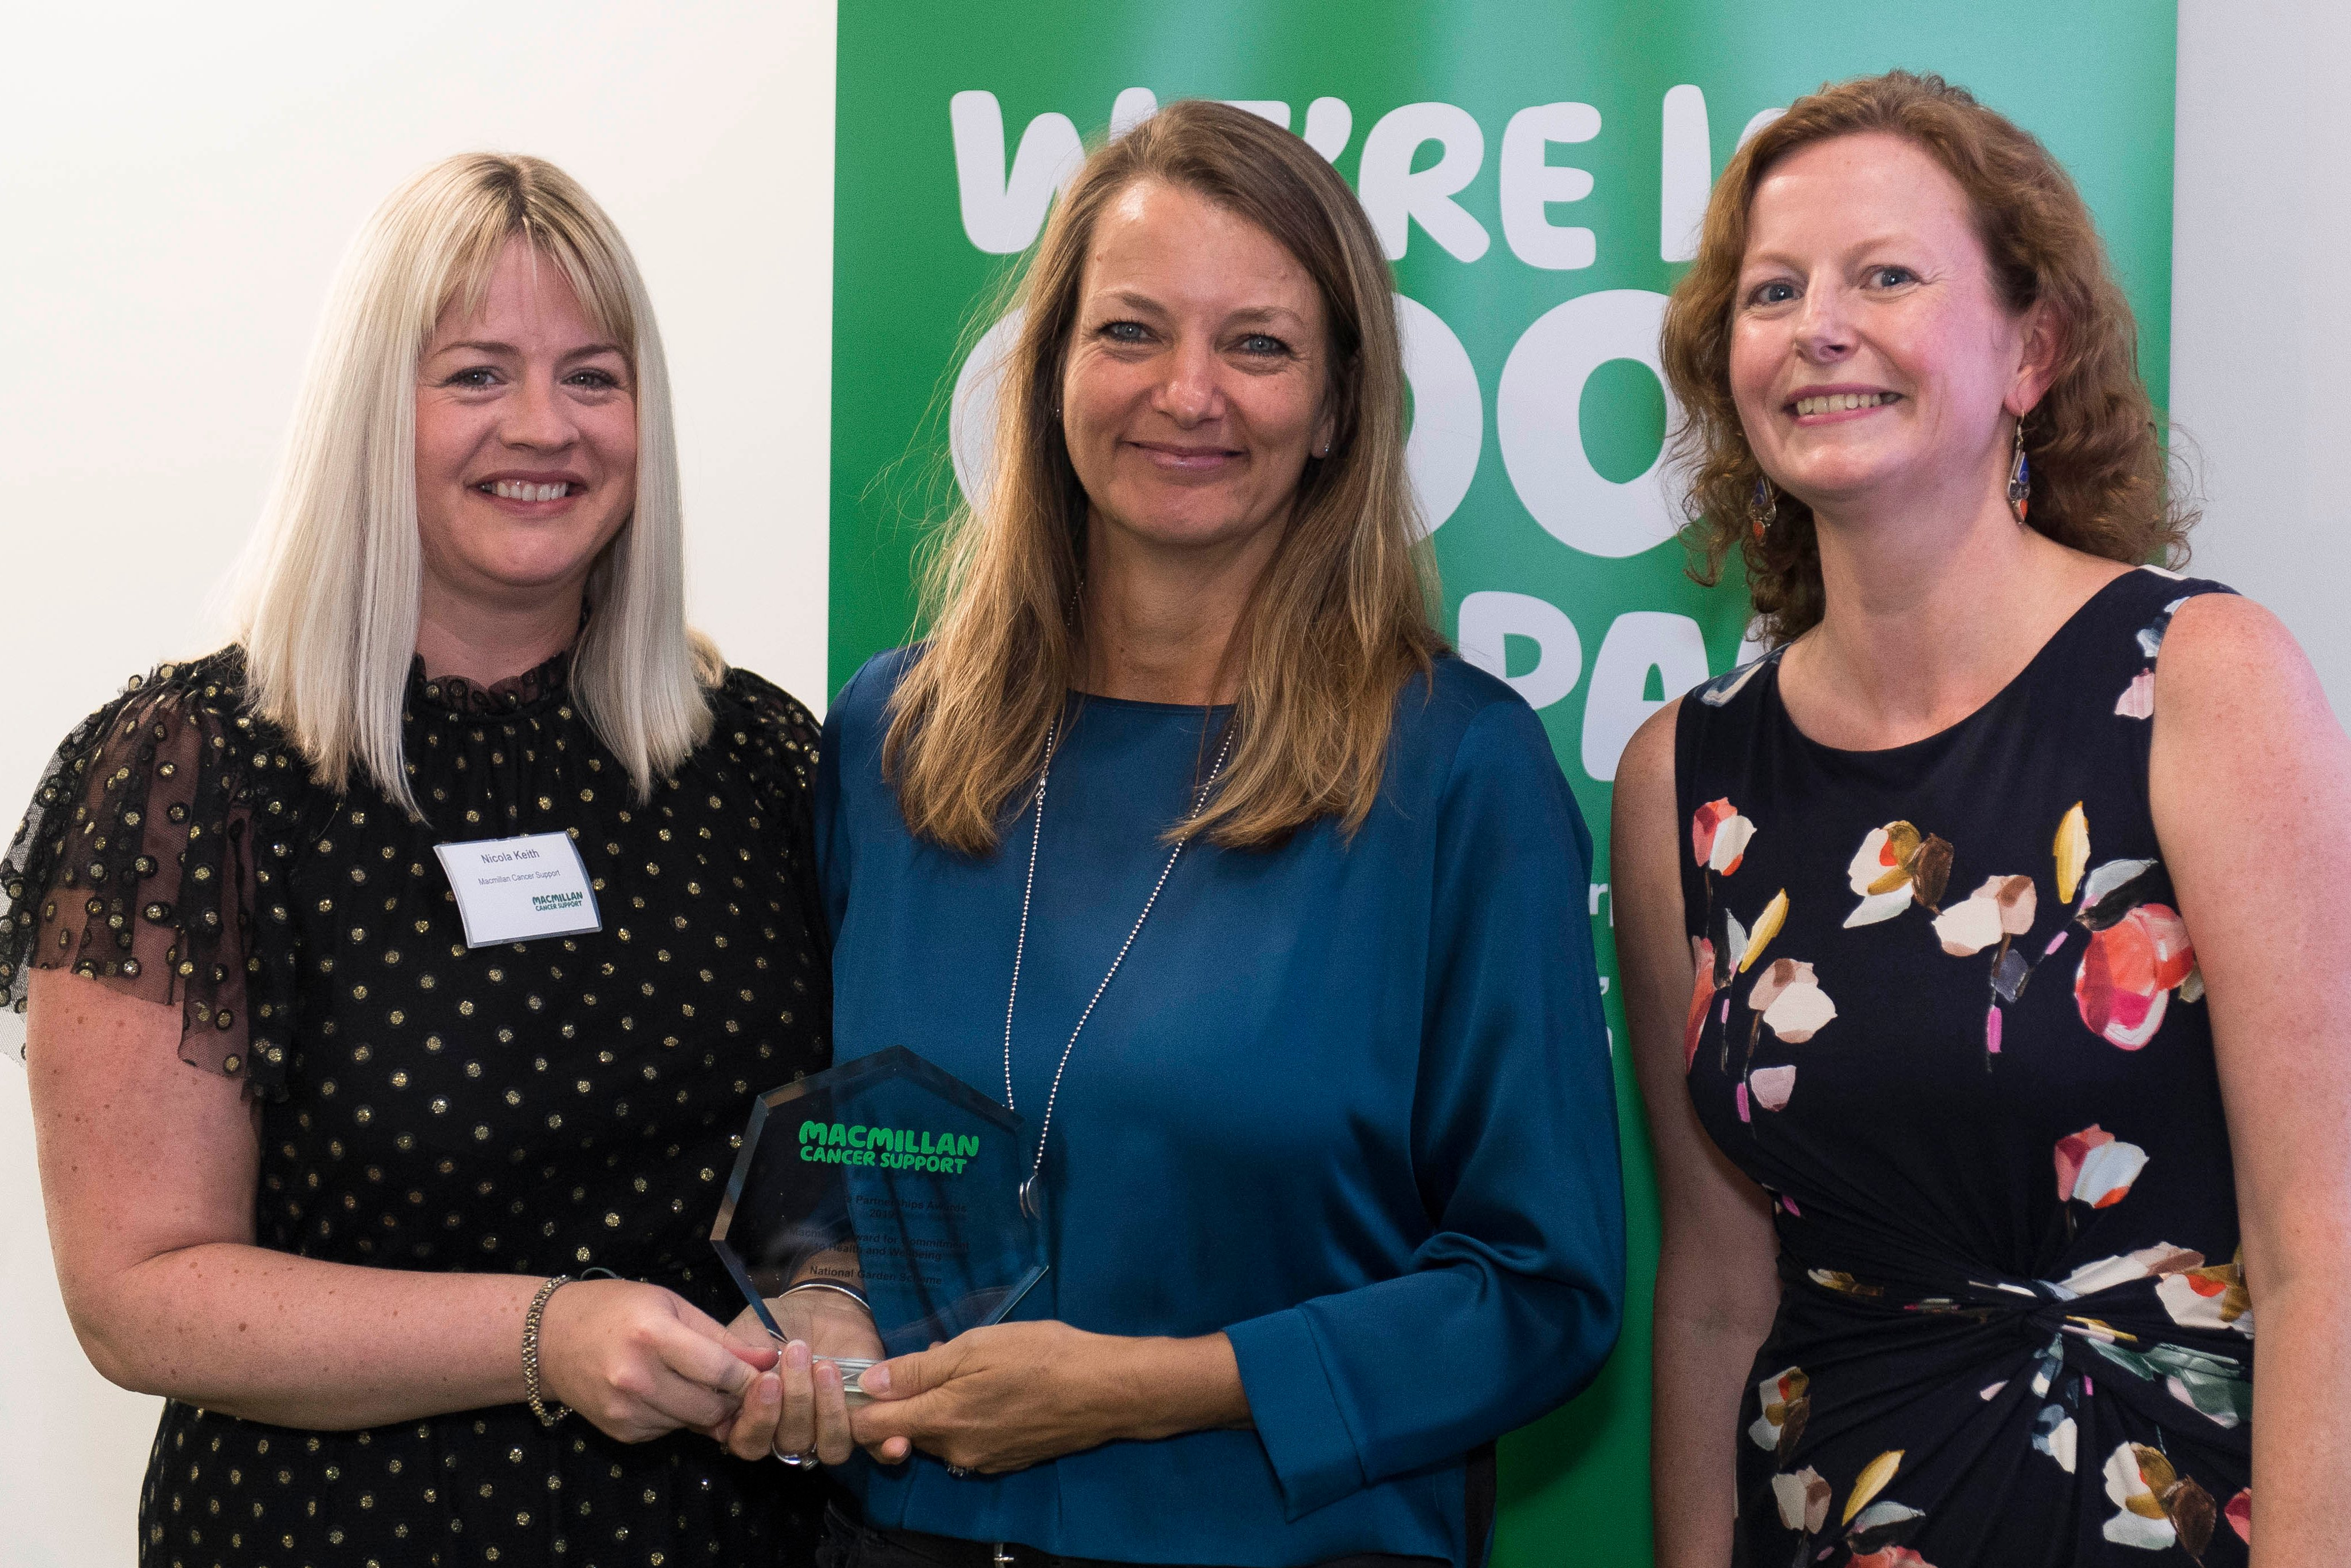 Macmillan Cancer Support's Nicola Keith (left) and Natasha Parker (right) present the award for Commitment to Health and Wellbeing to Vicky Flynn